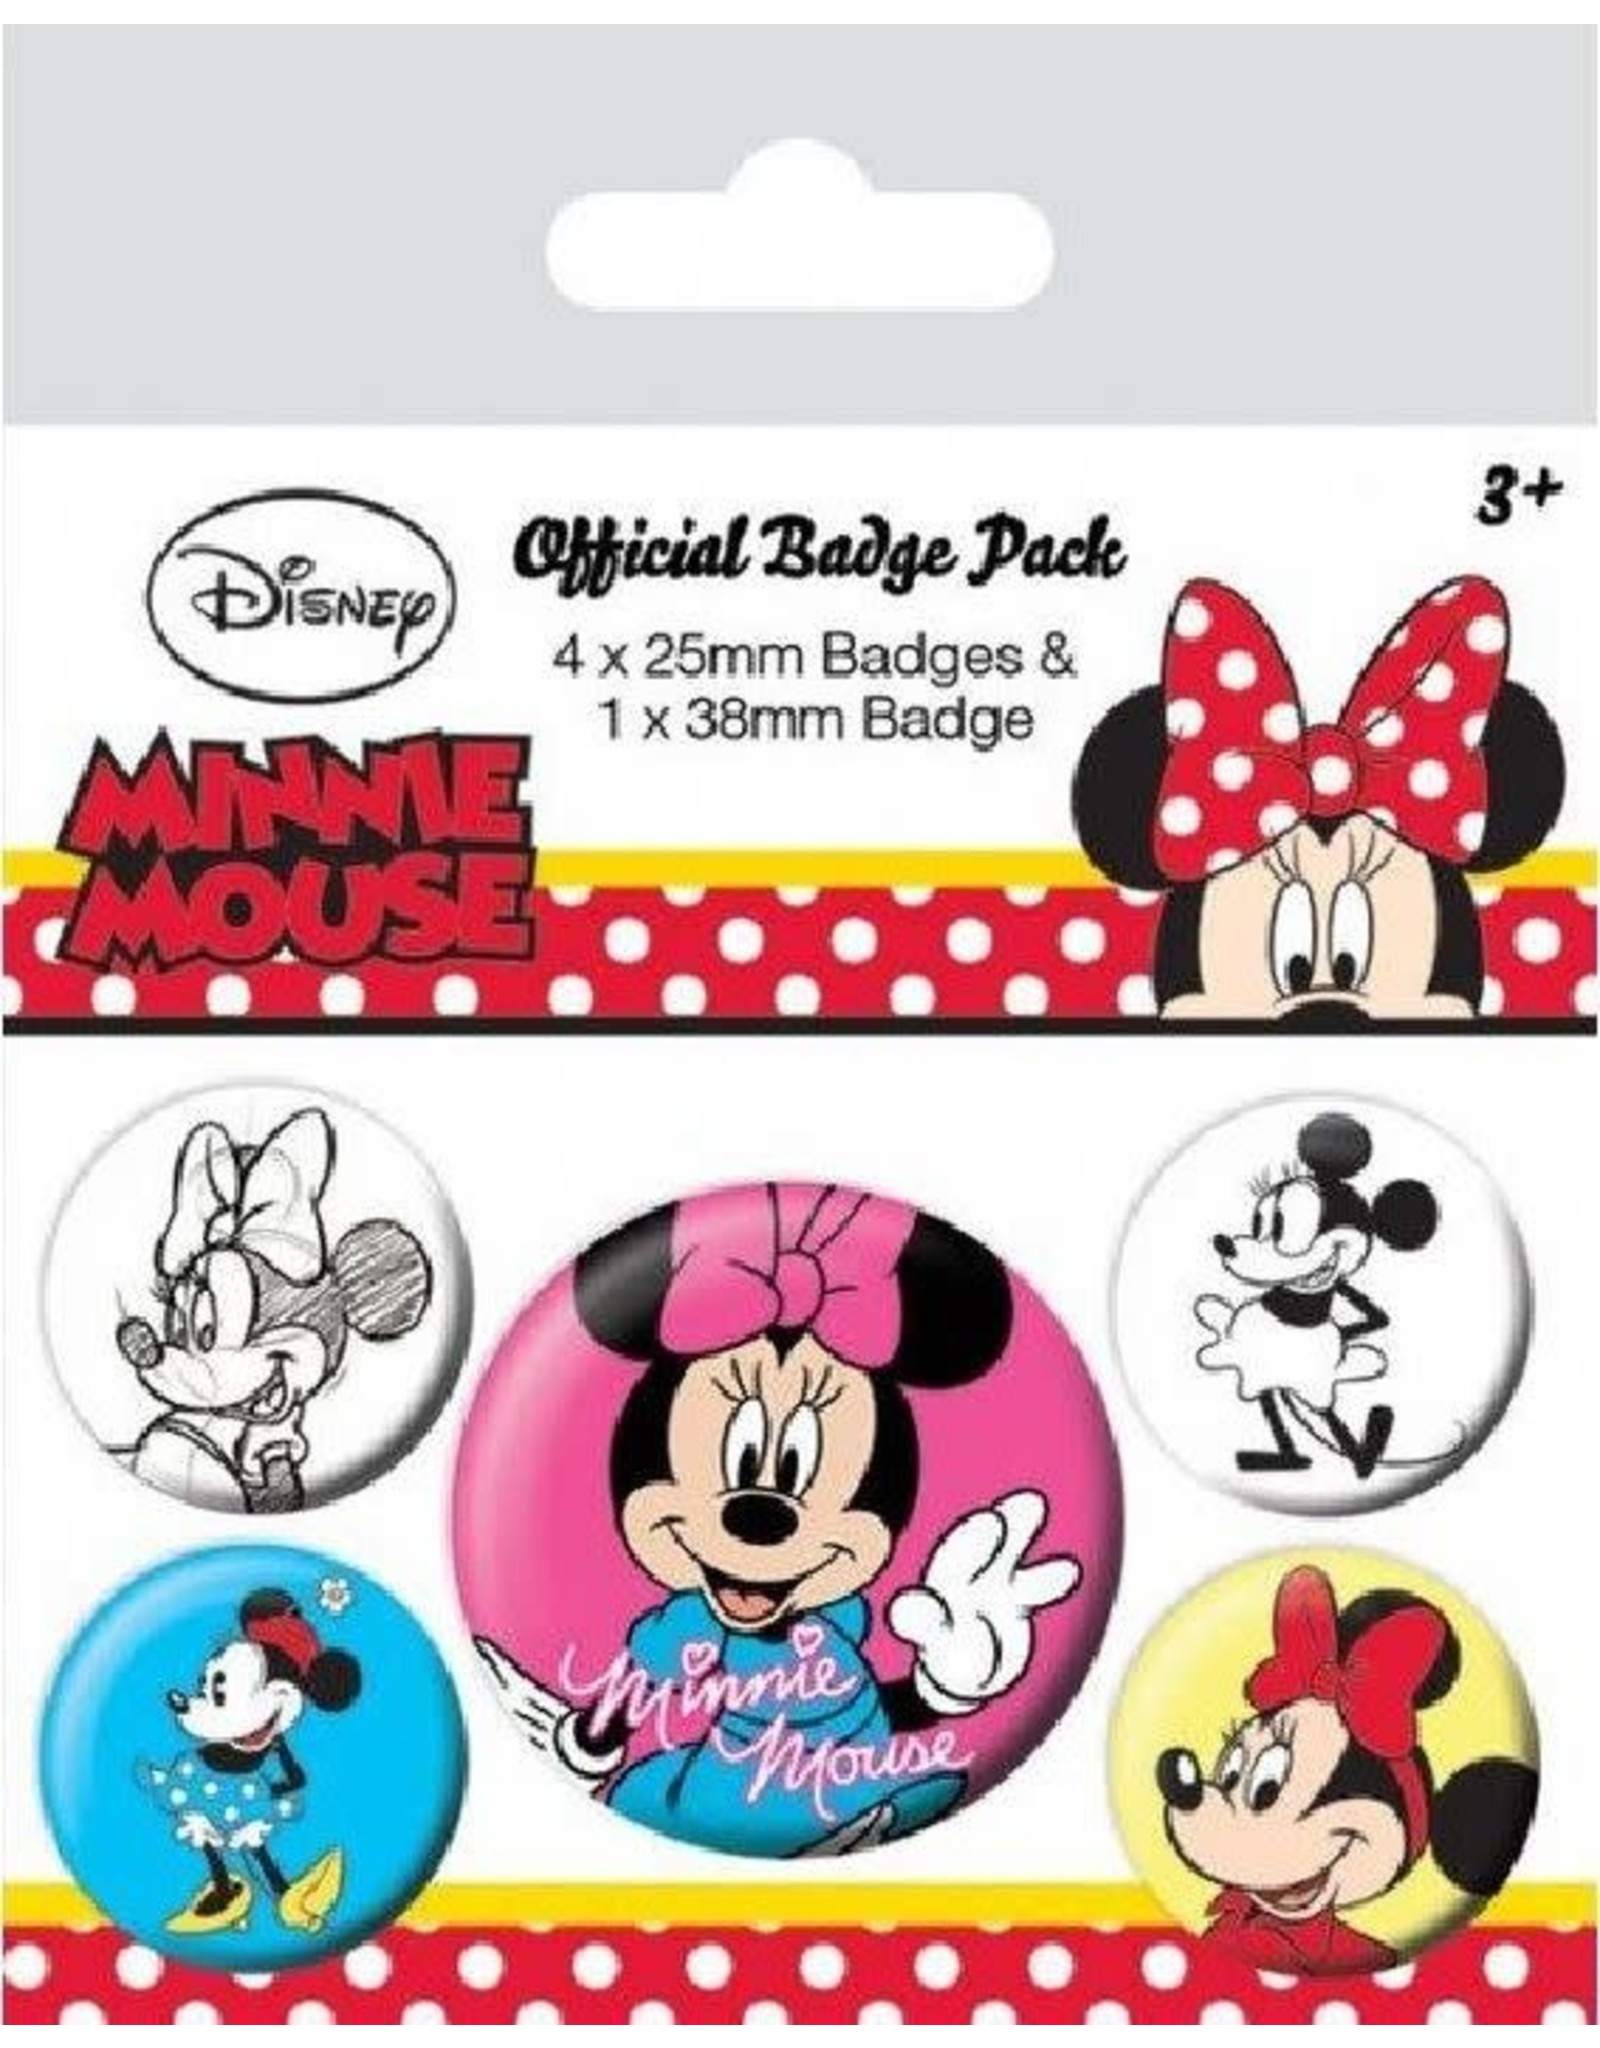 MINNIE MOUSE 5-Pack Badges